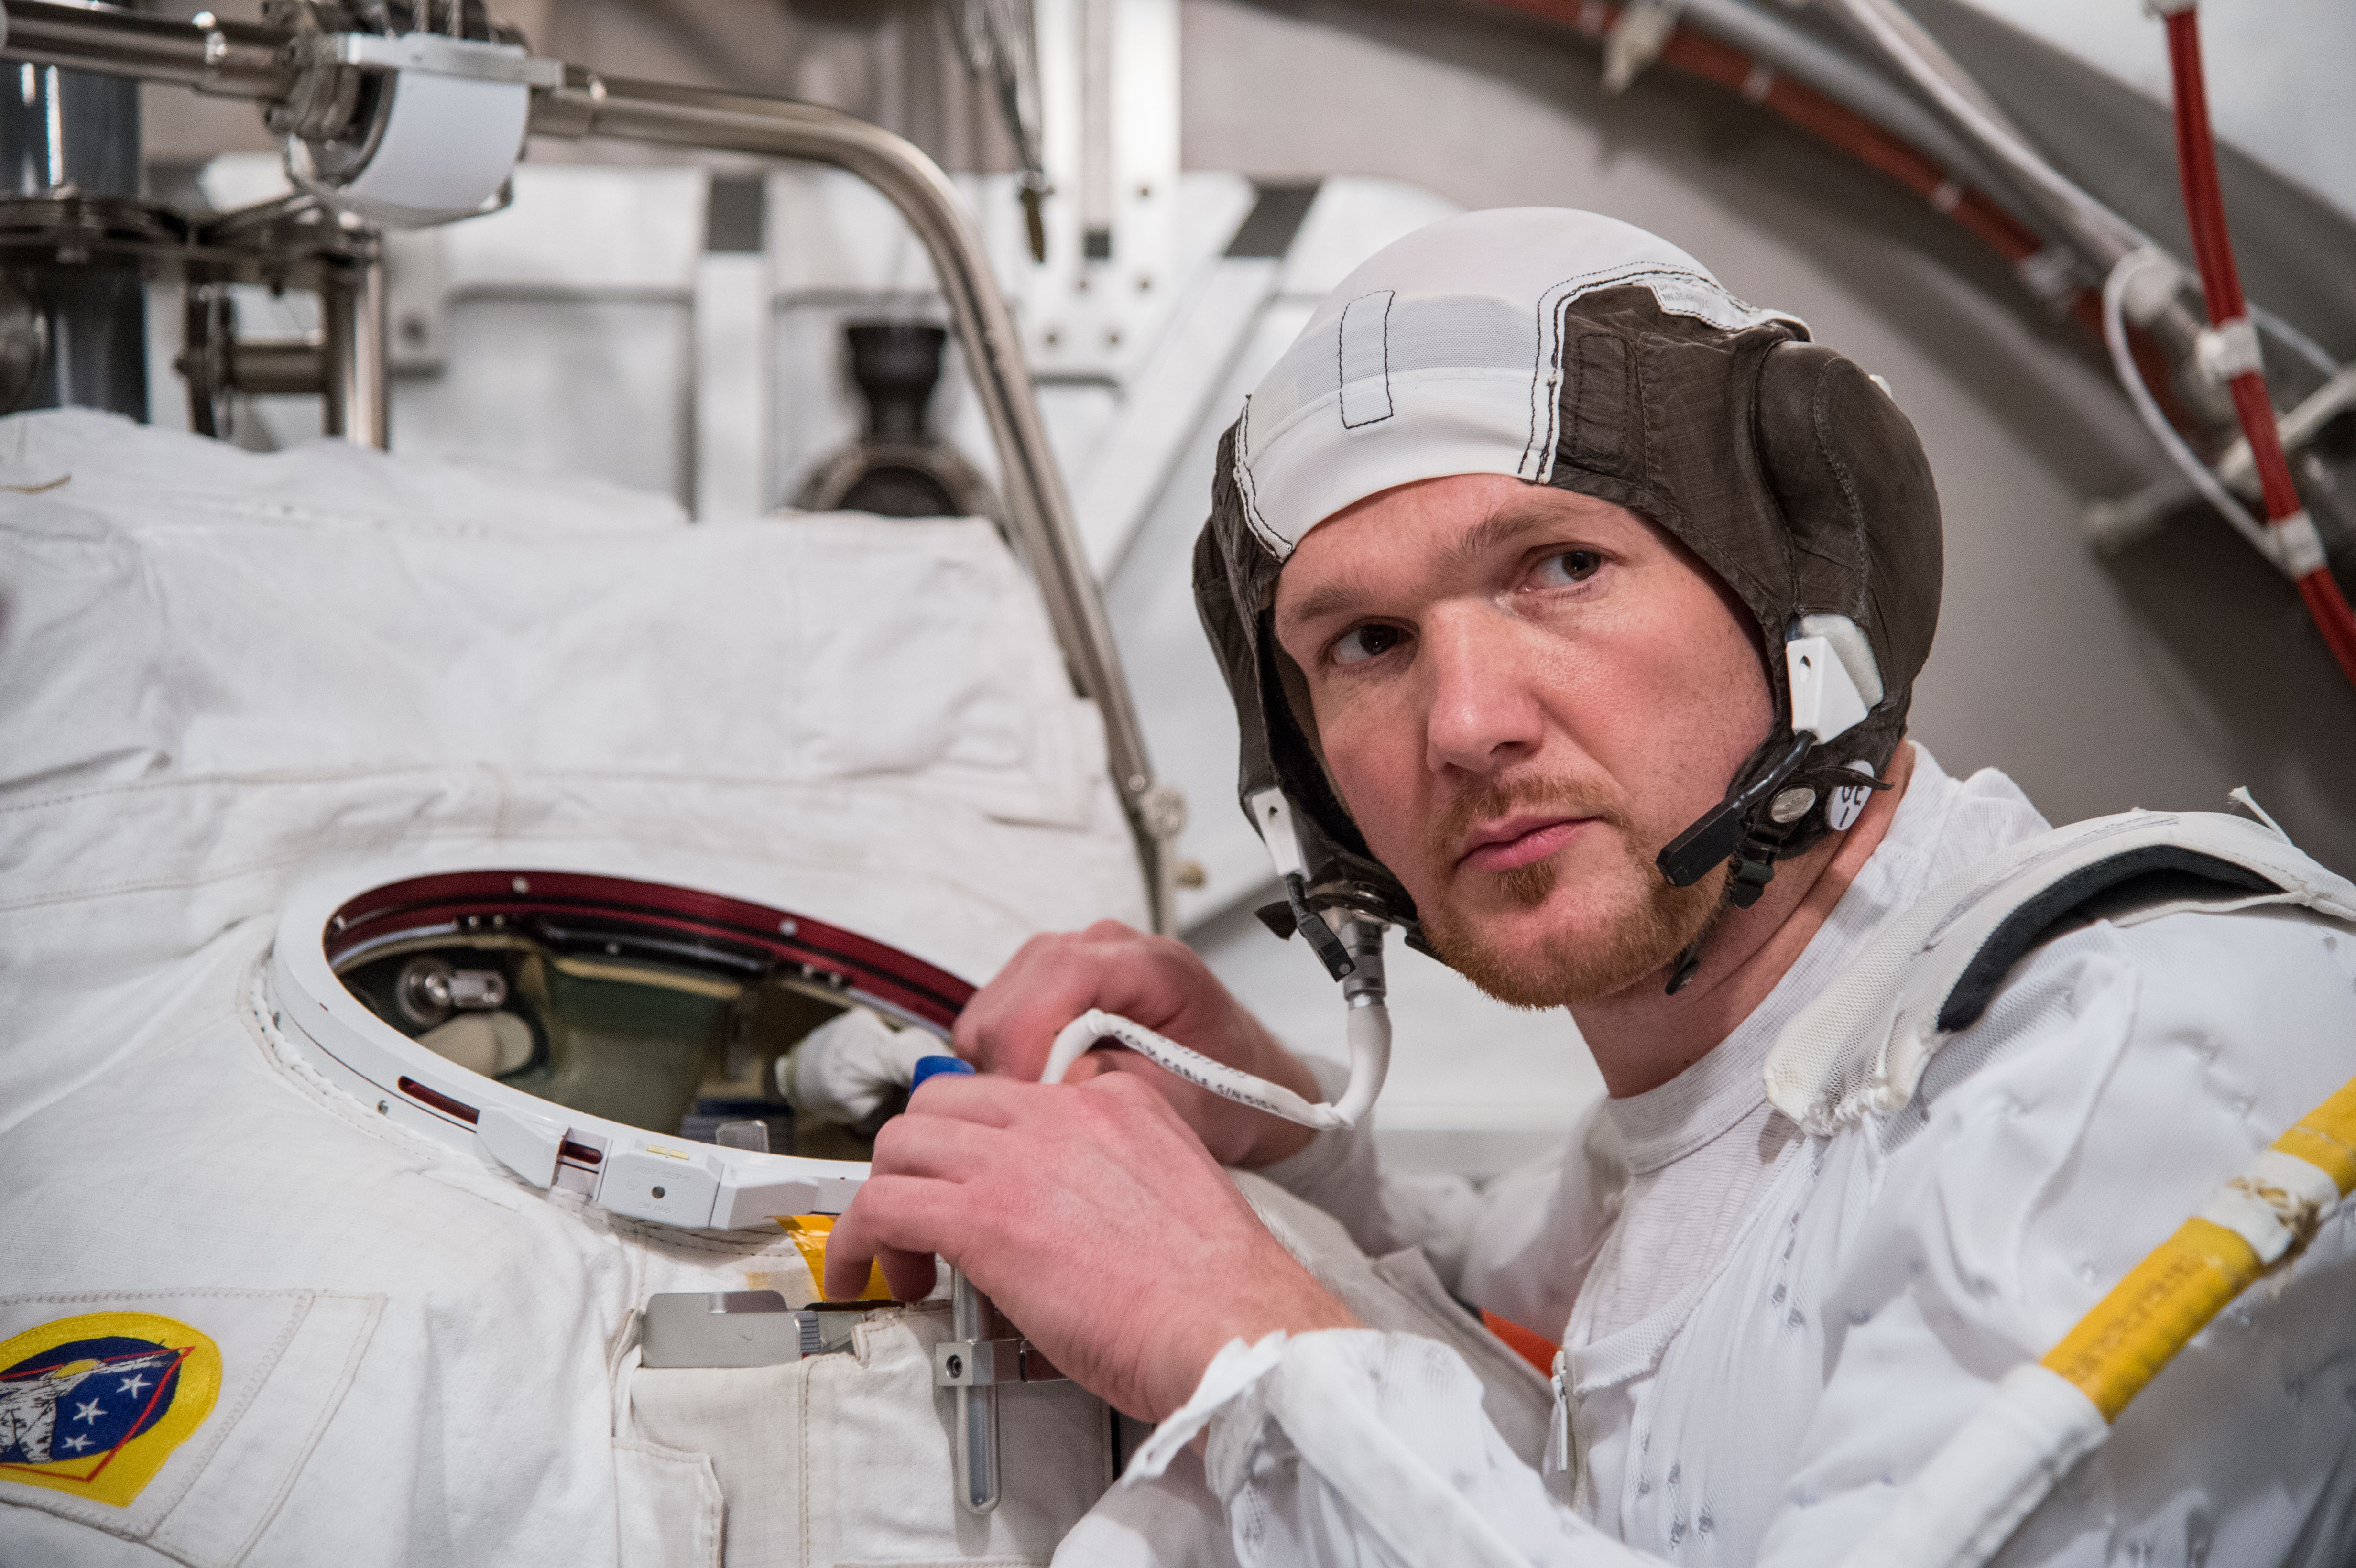 Astronaut Alexander Gerst participates in an mobility excercise at NASA's Johnson Space Center in Houston.